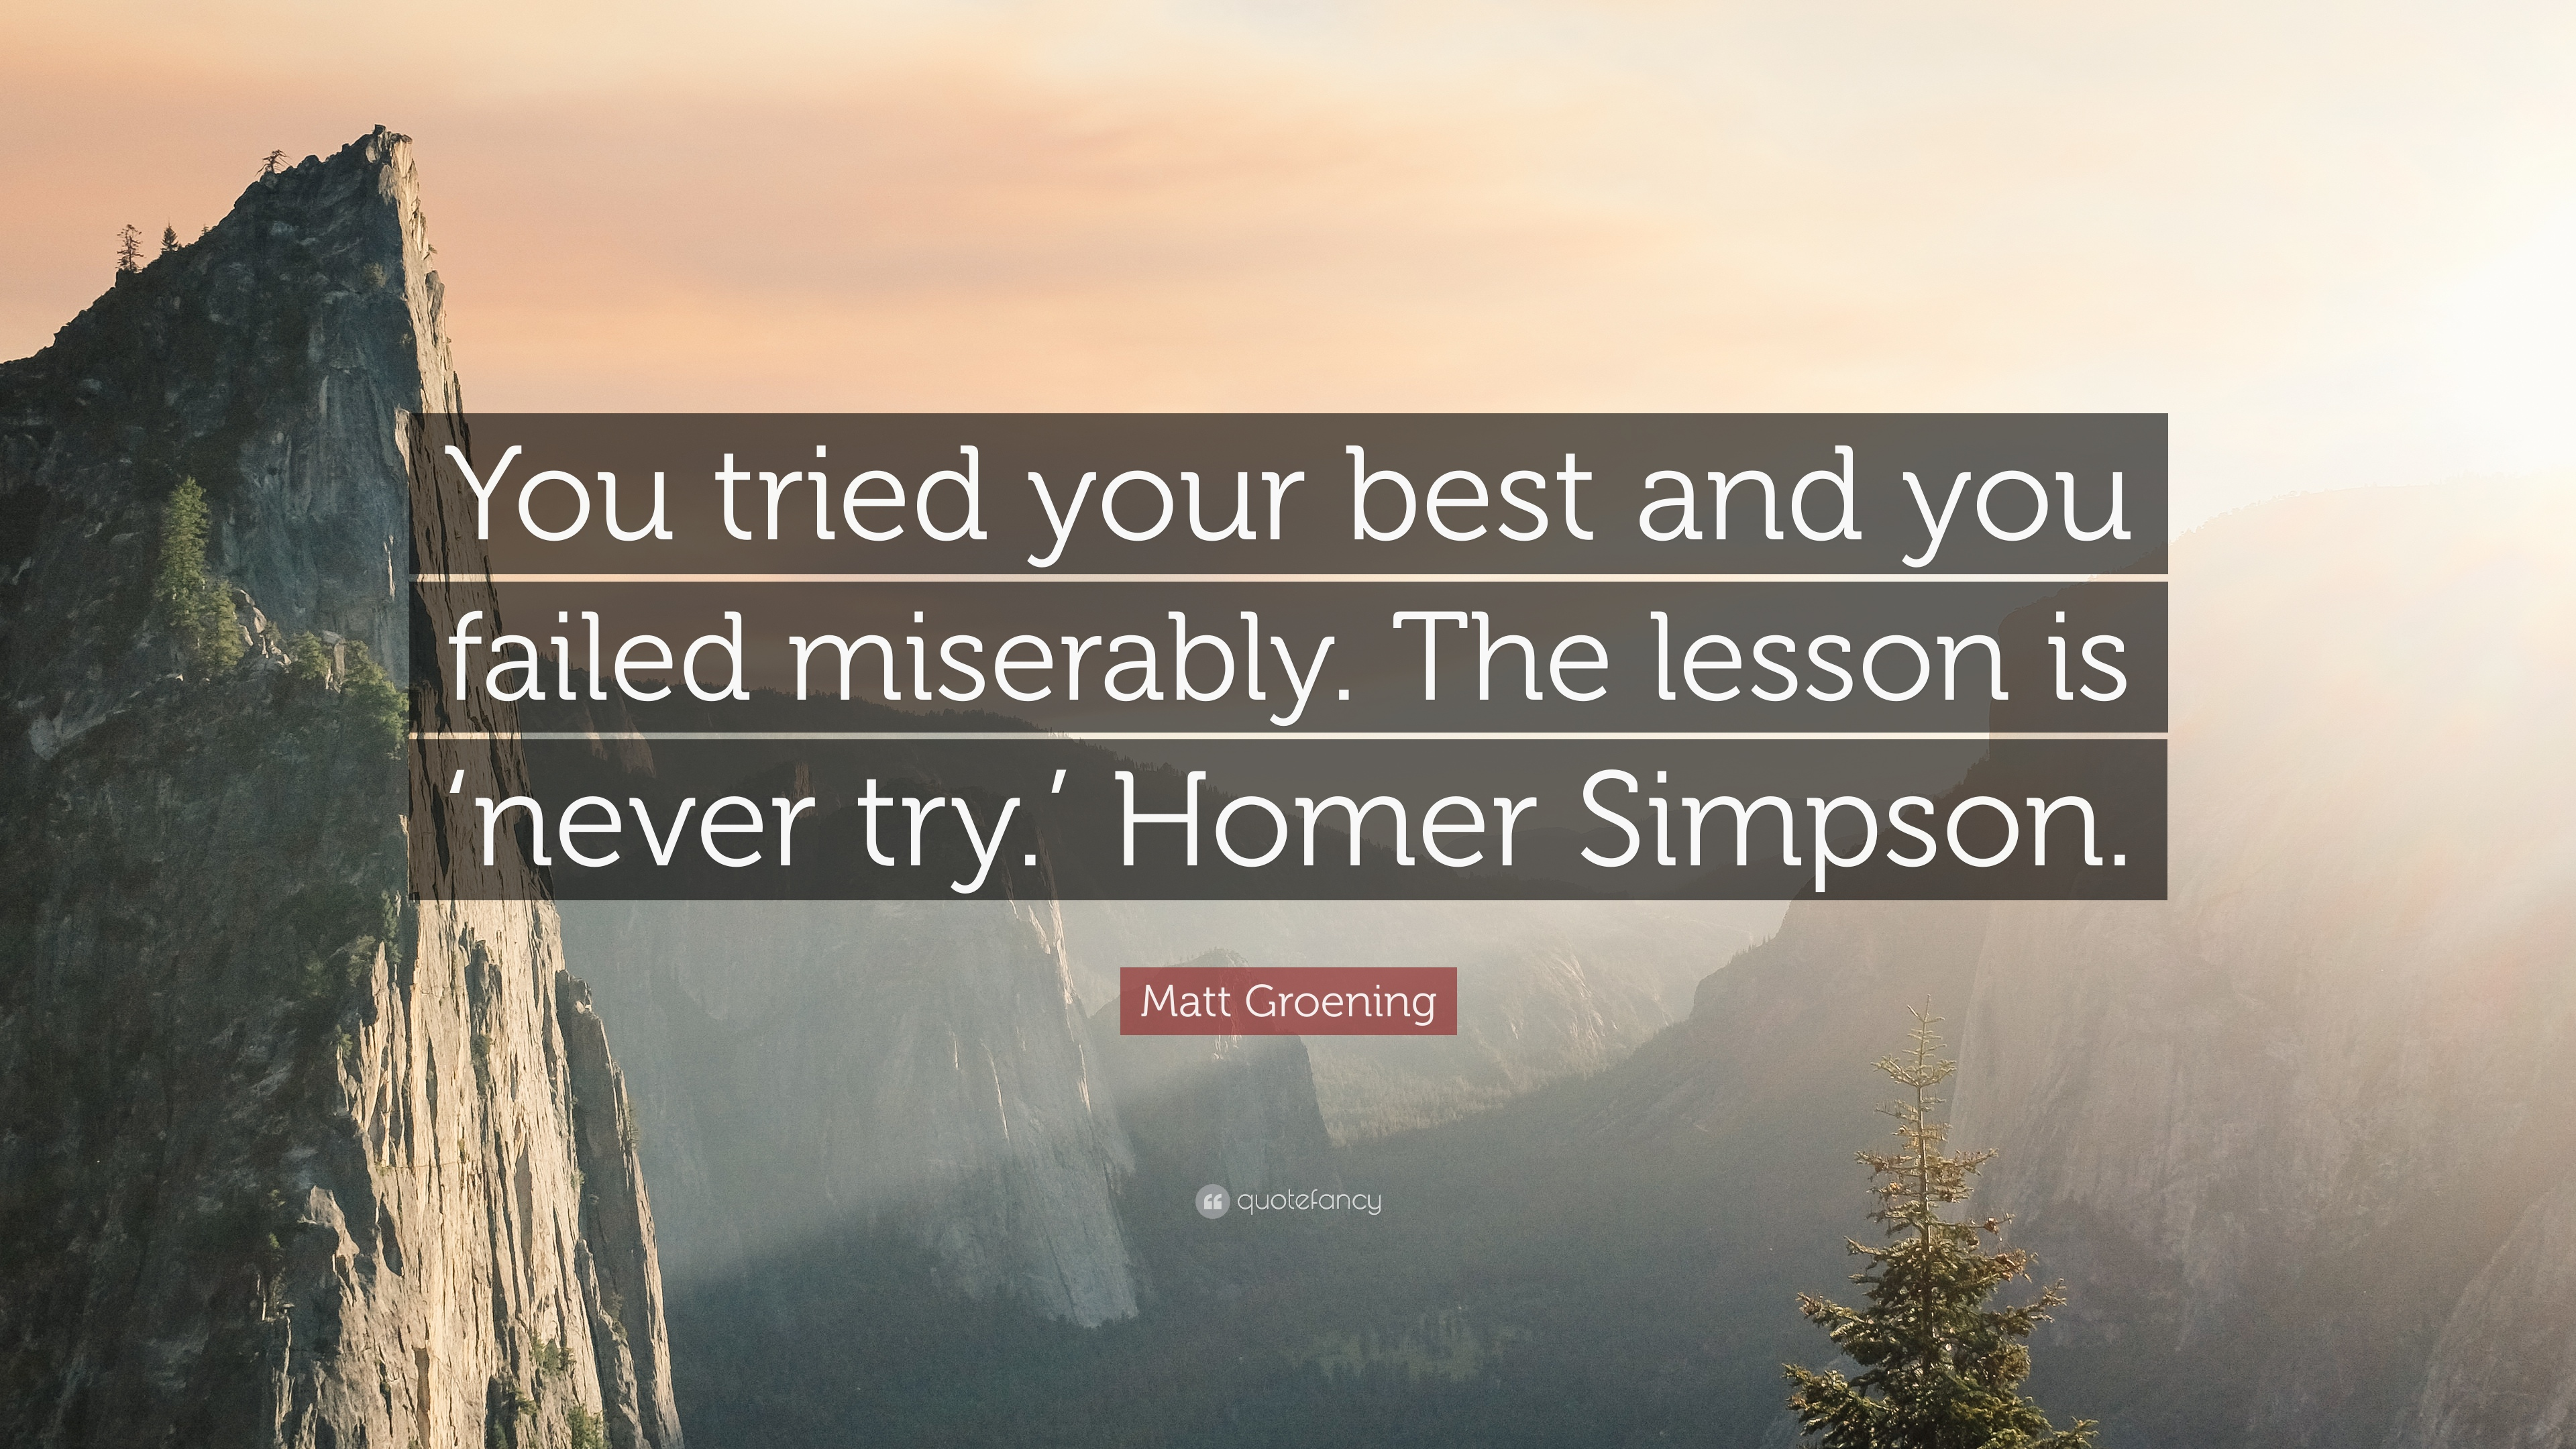 375542-Matt-Groening-Quote-You-tried-your-best-and-you-failed-miserably.jpg